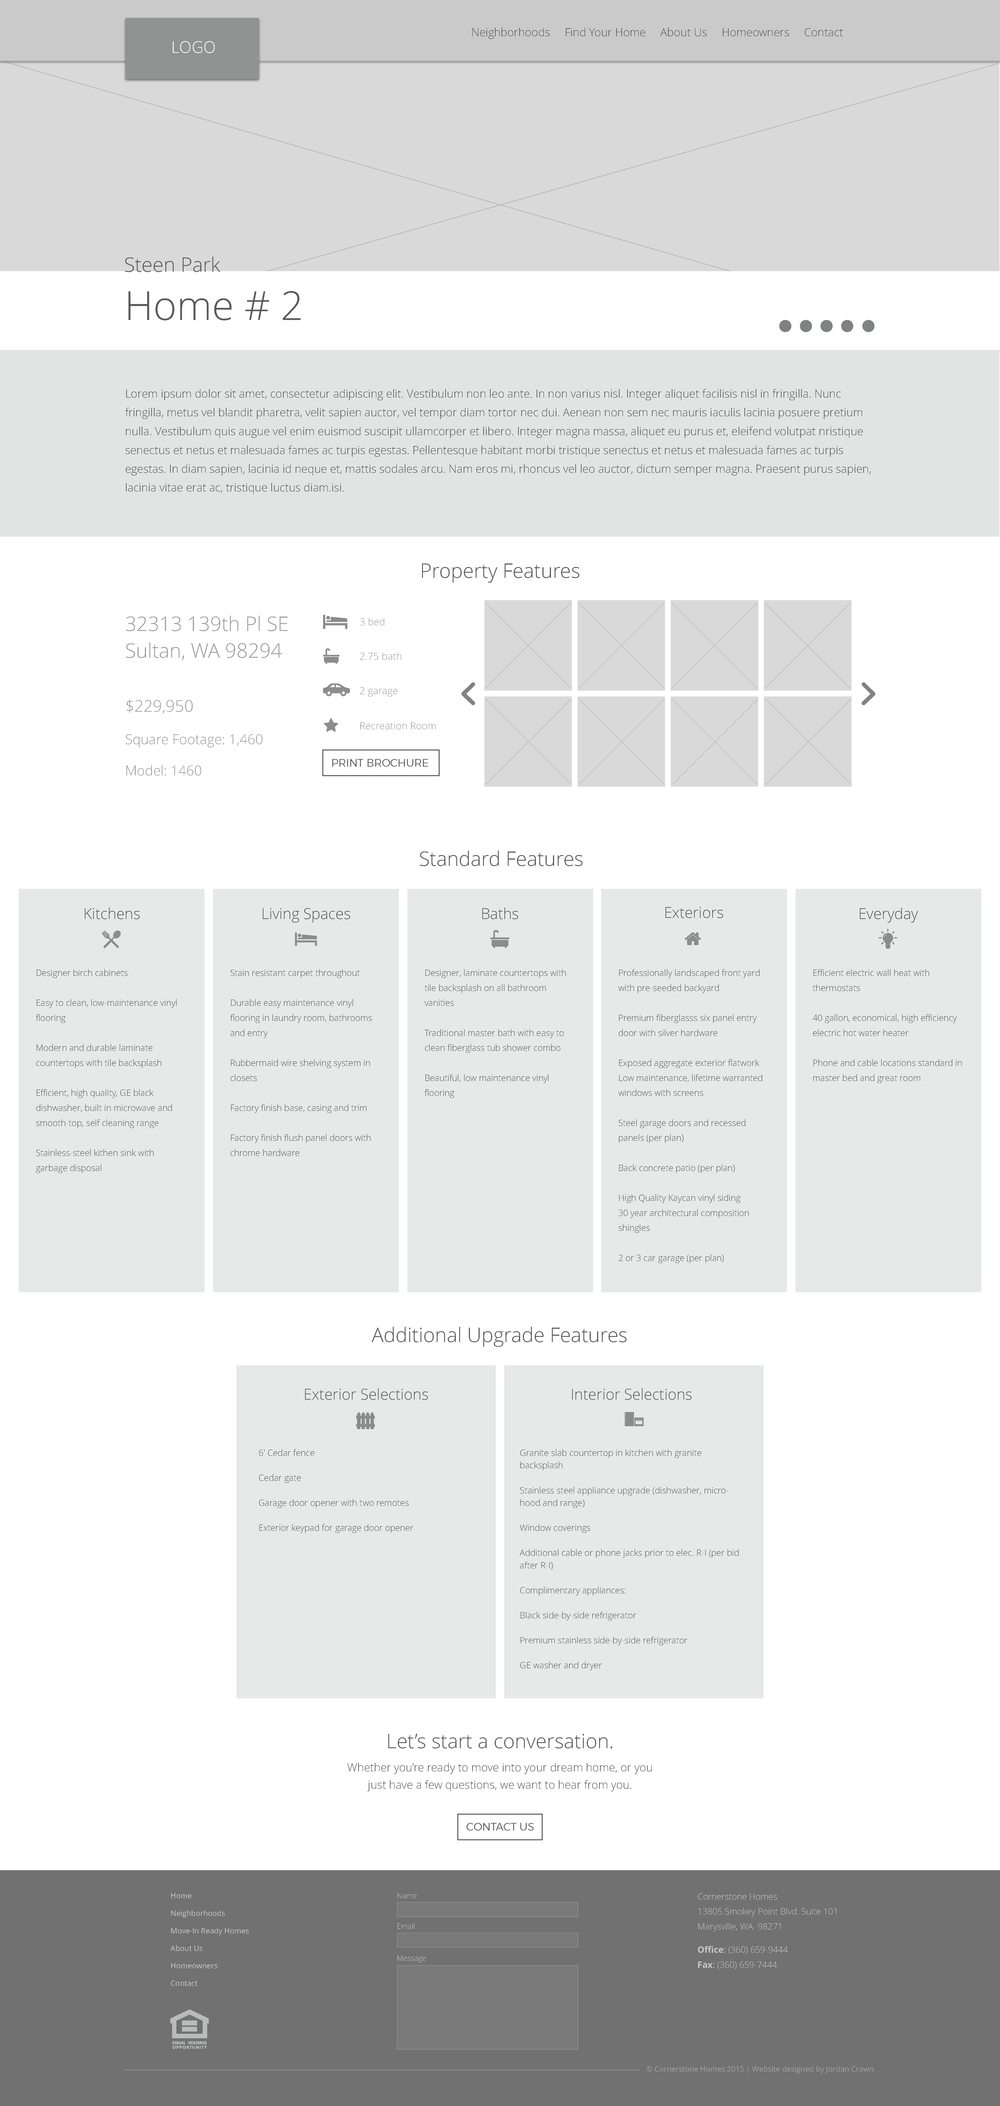 CornerstoneHomeWireframes_Page_07.png